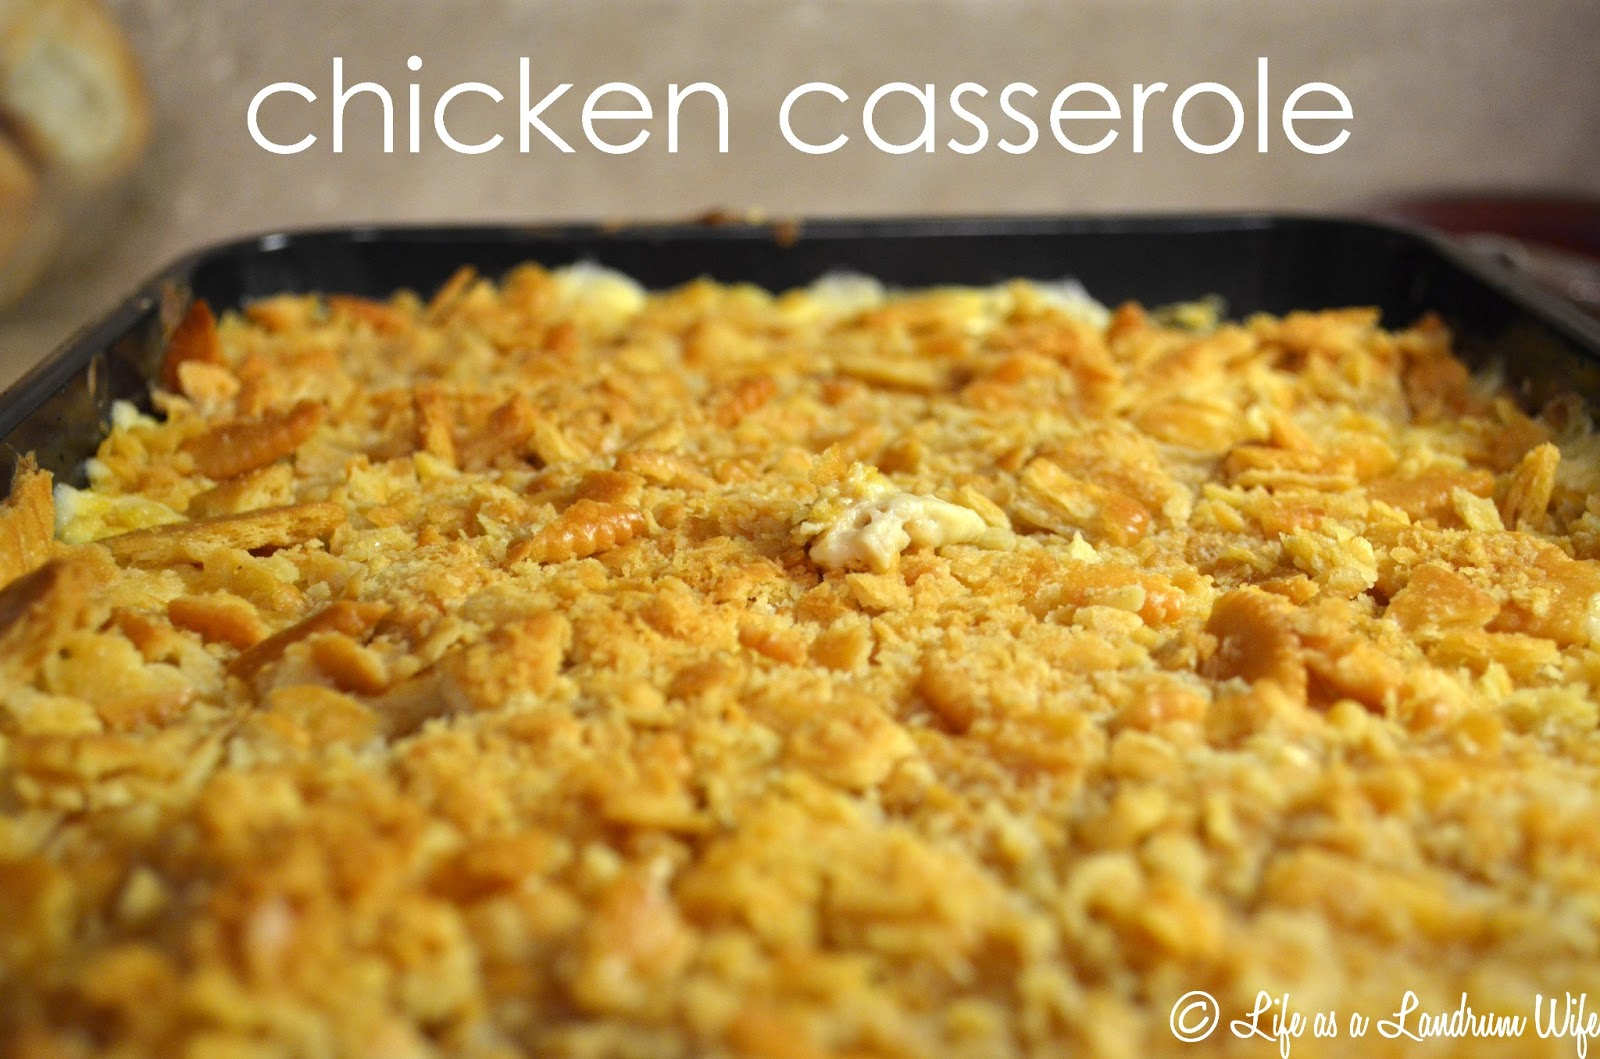 ... over to enjoy some delicious chicken casserole with my family and me